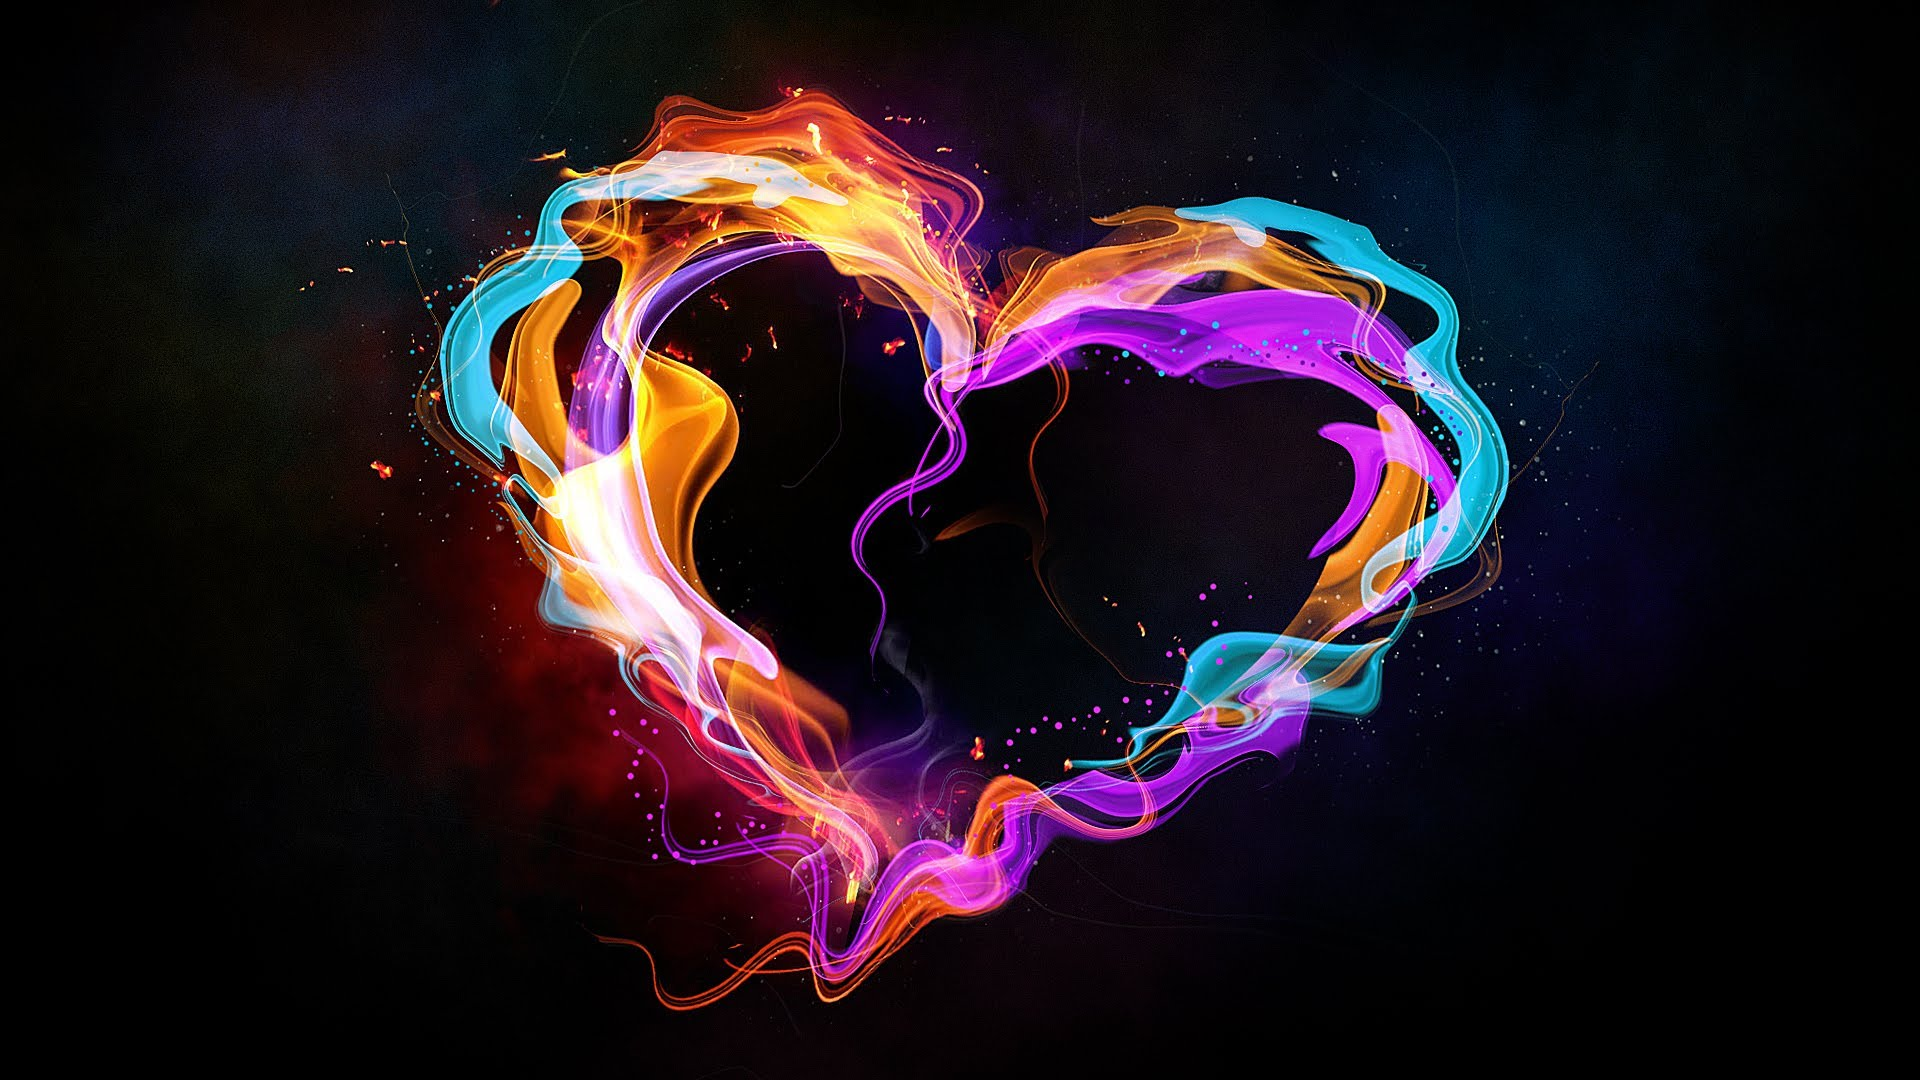 Broken Heart Hd Wallpaper Free Download Create An Abstract Style Colorful Heart In Photoshop